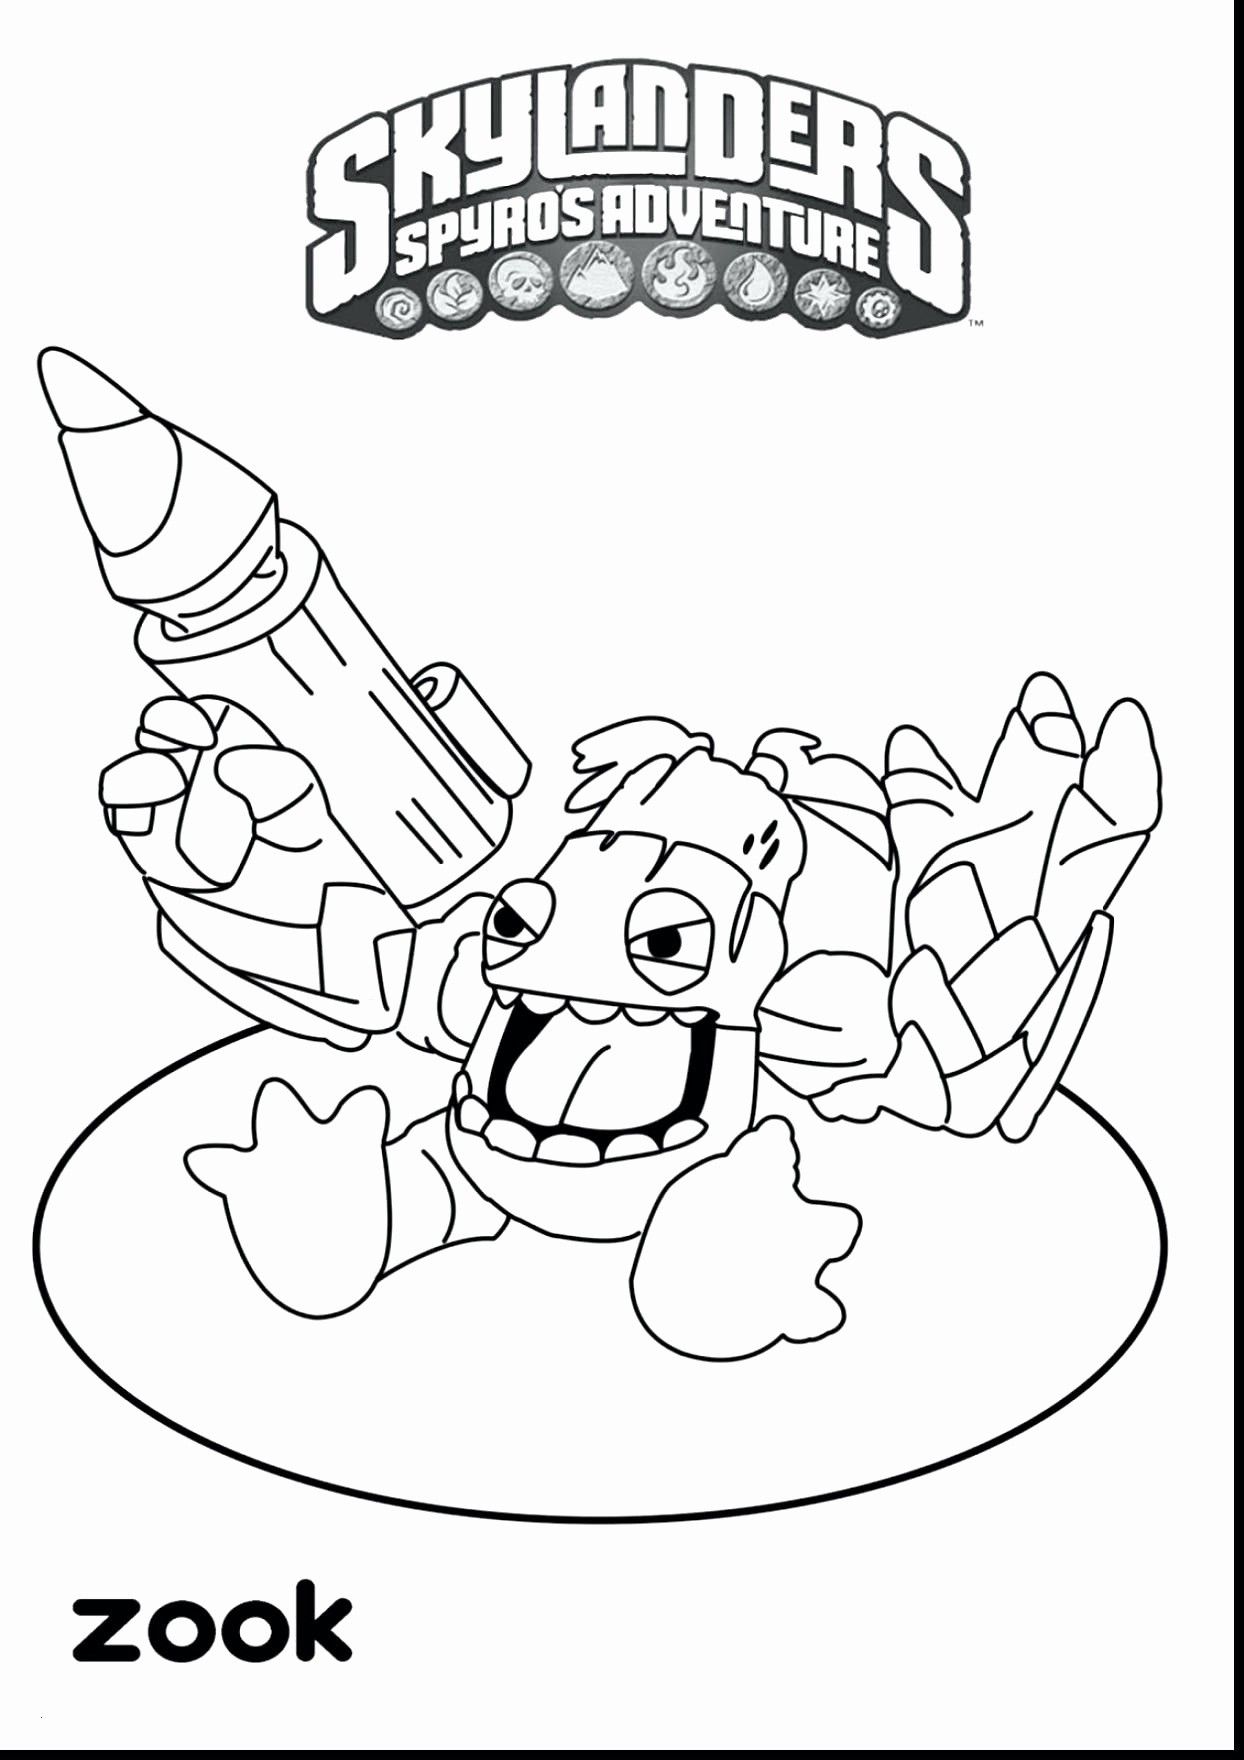 fun-coloring-pages-for-girls-of-fun-coloring-pages-for-girls Fun Coloring Pages for Girls Cartoon